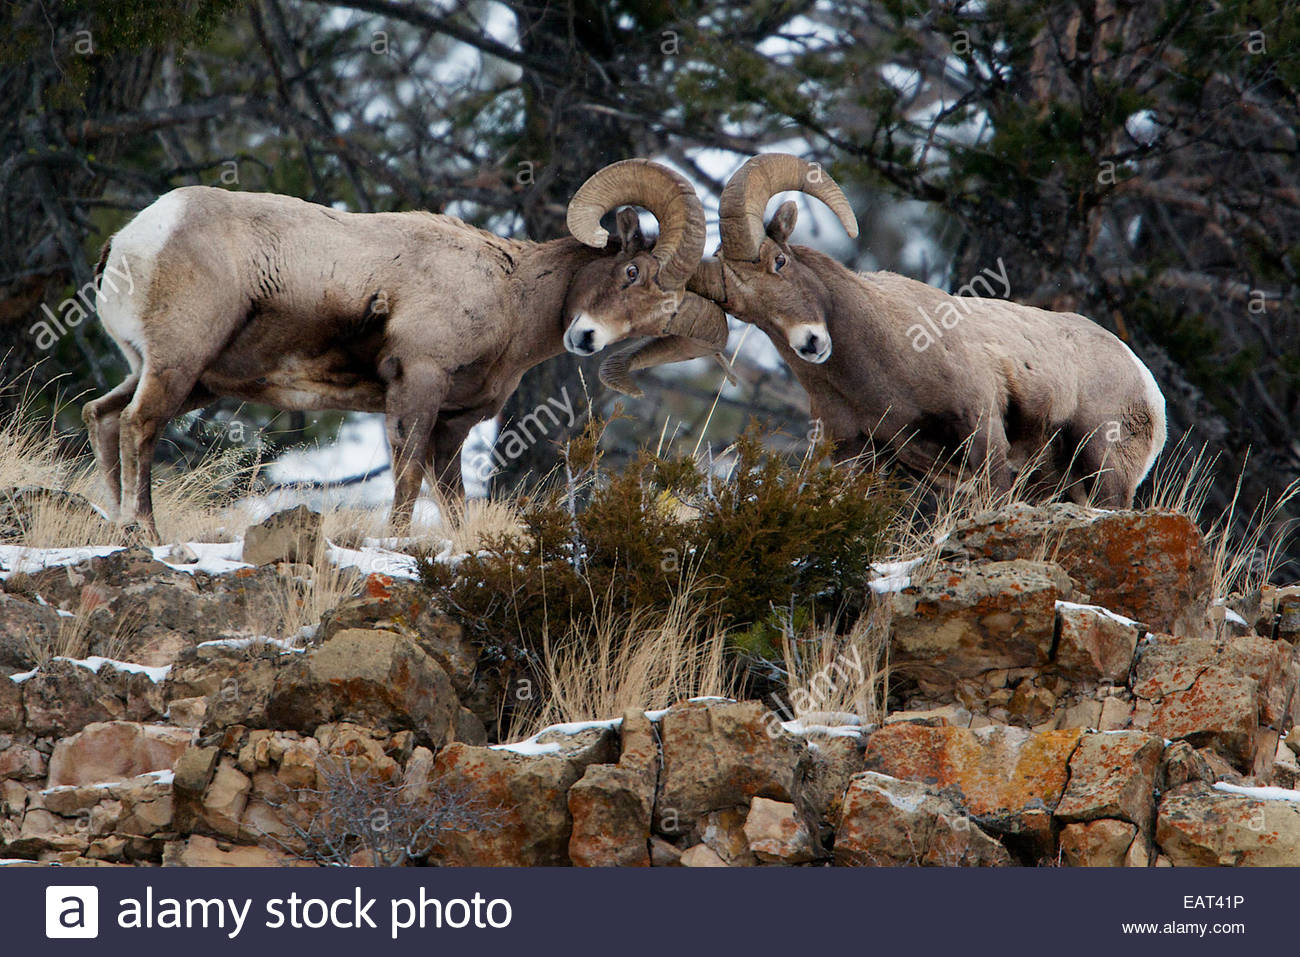 Heads Of Rams Stock Photos & Heads Of Rams Stock Images - Alamy